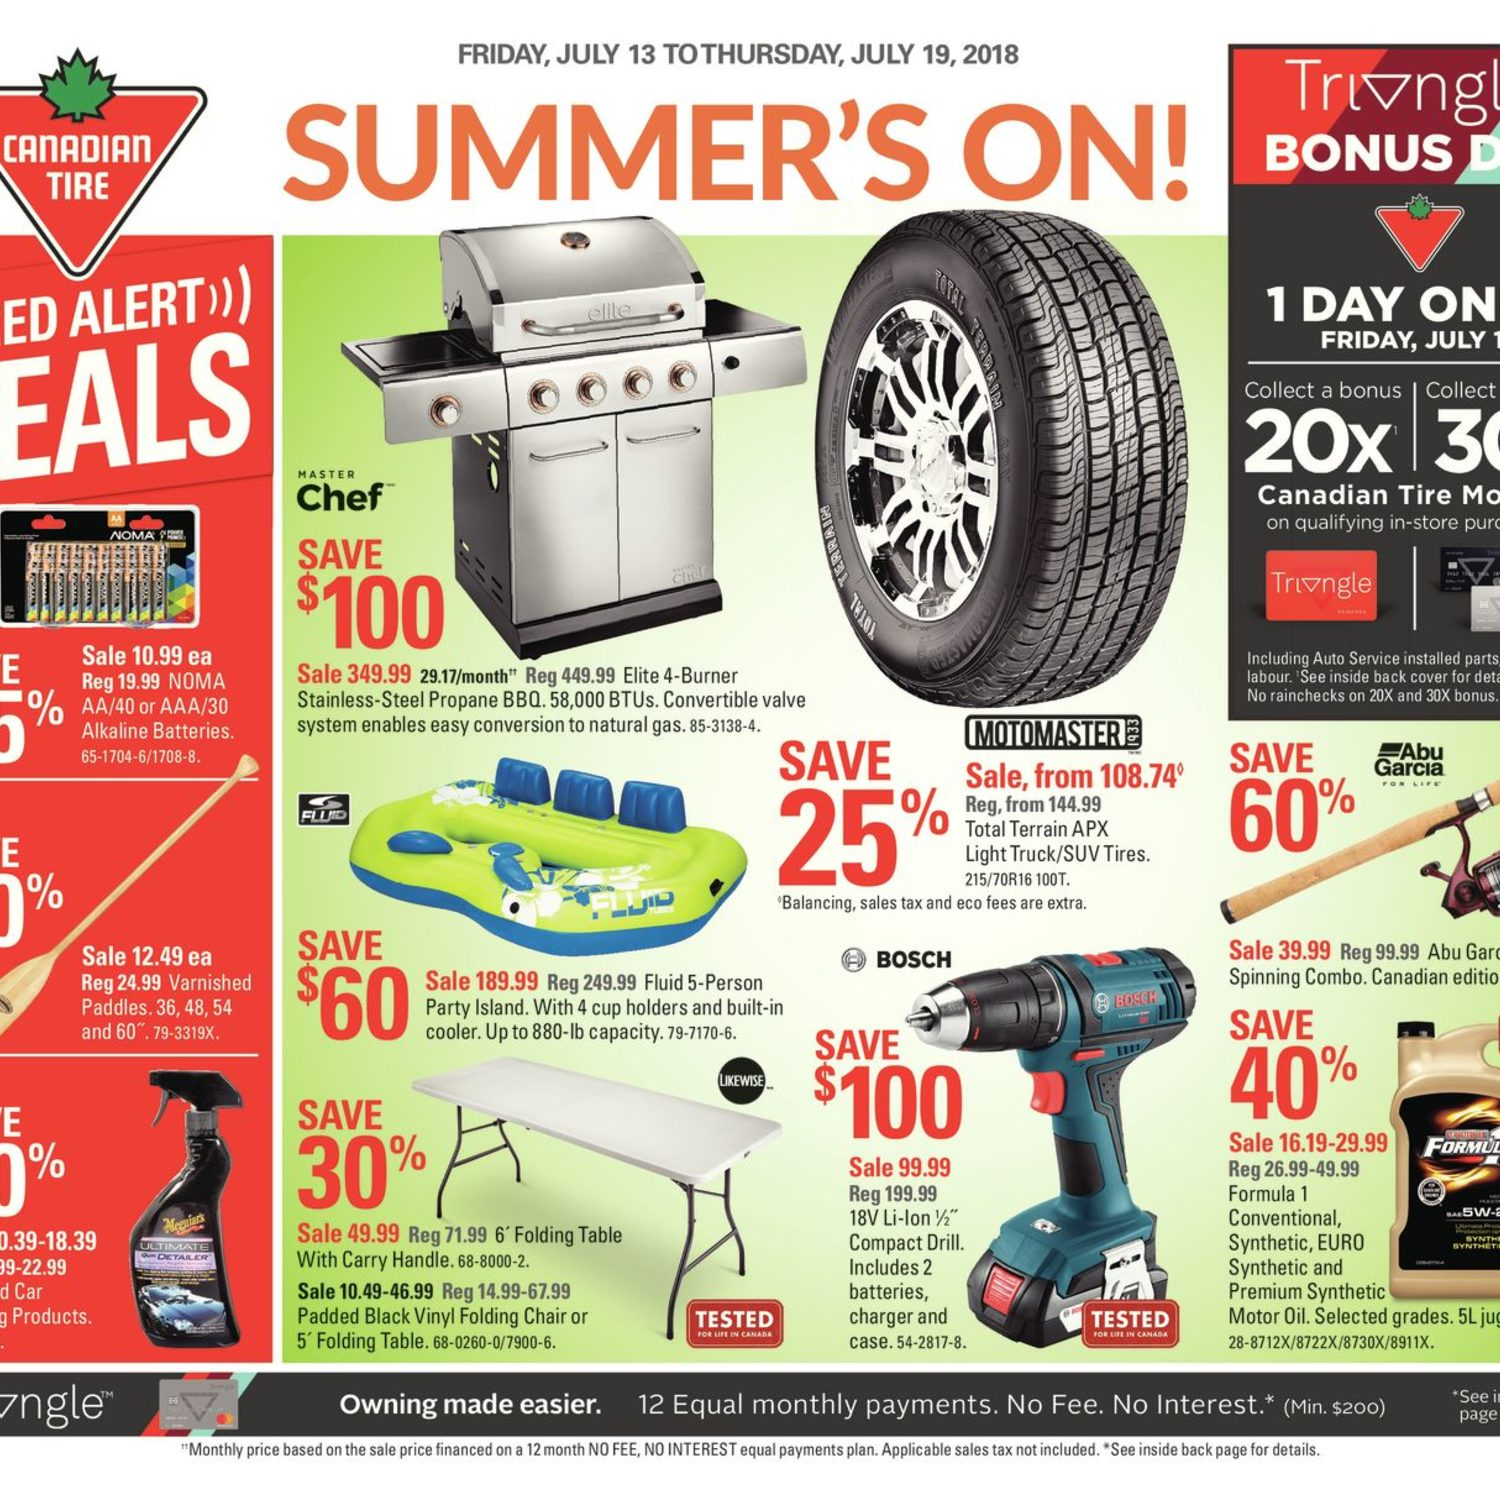 Remarkable Canadian Tire Weekly Flyer Weekly Summers On Jul 13 Machost Co Dining Chair Design Ideas Machostcouk